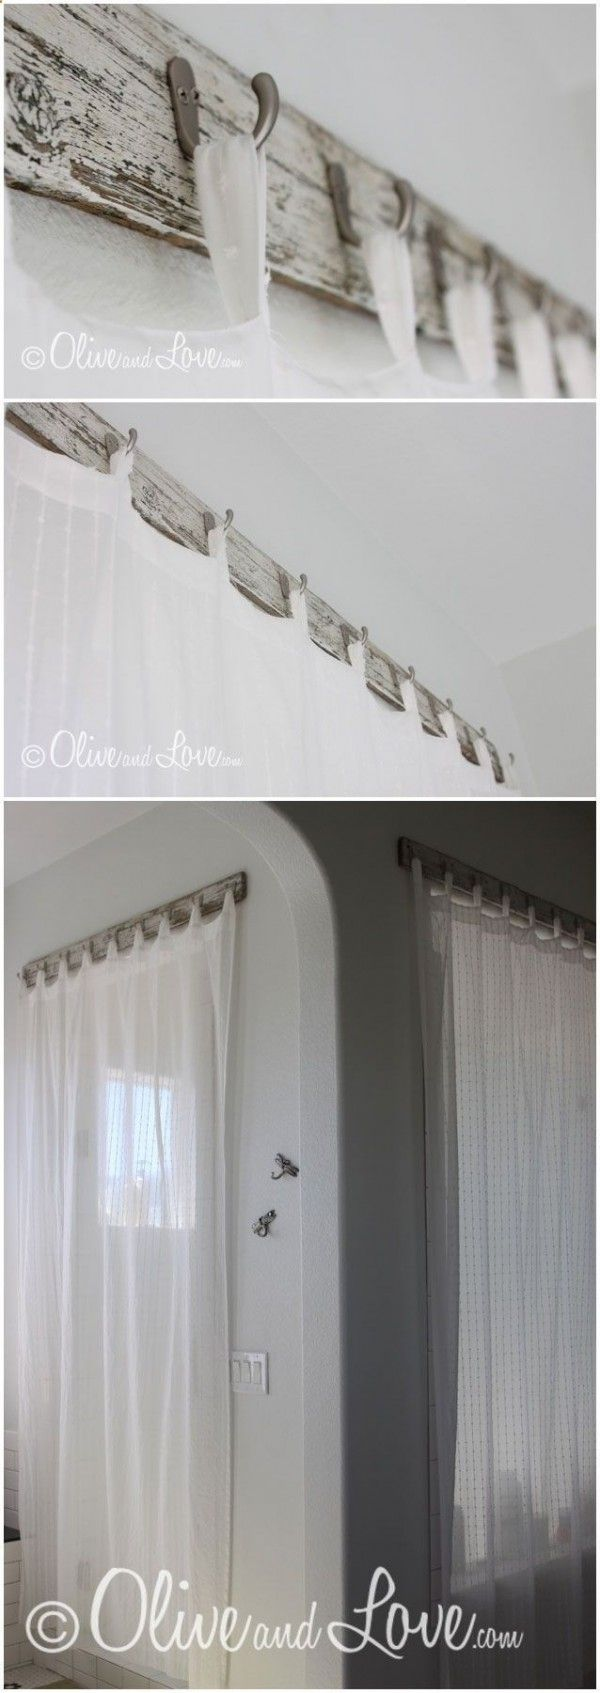 Love the idea for shabby chic curtain hooks @istandarddesign